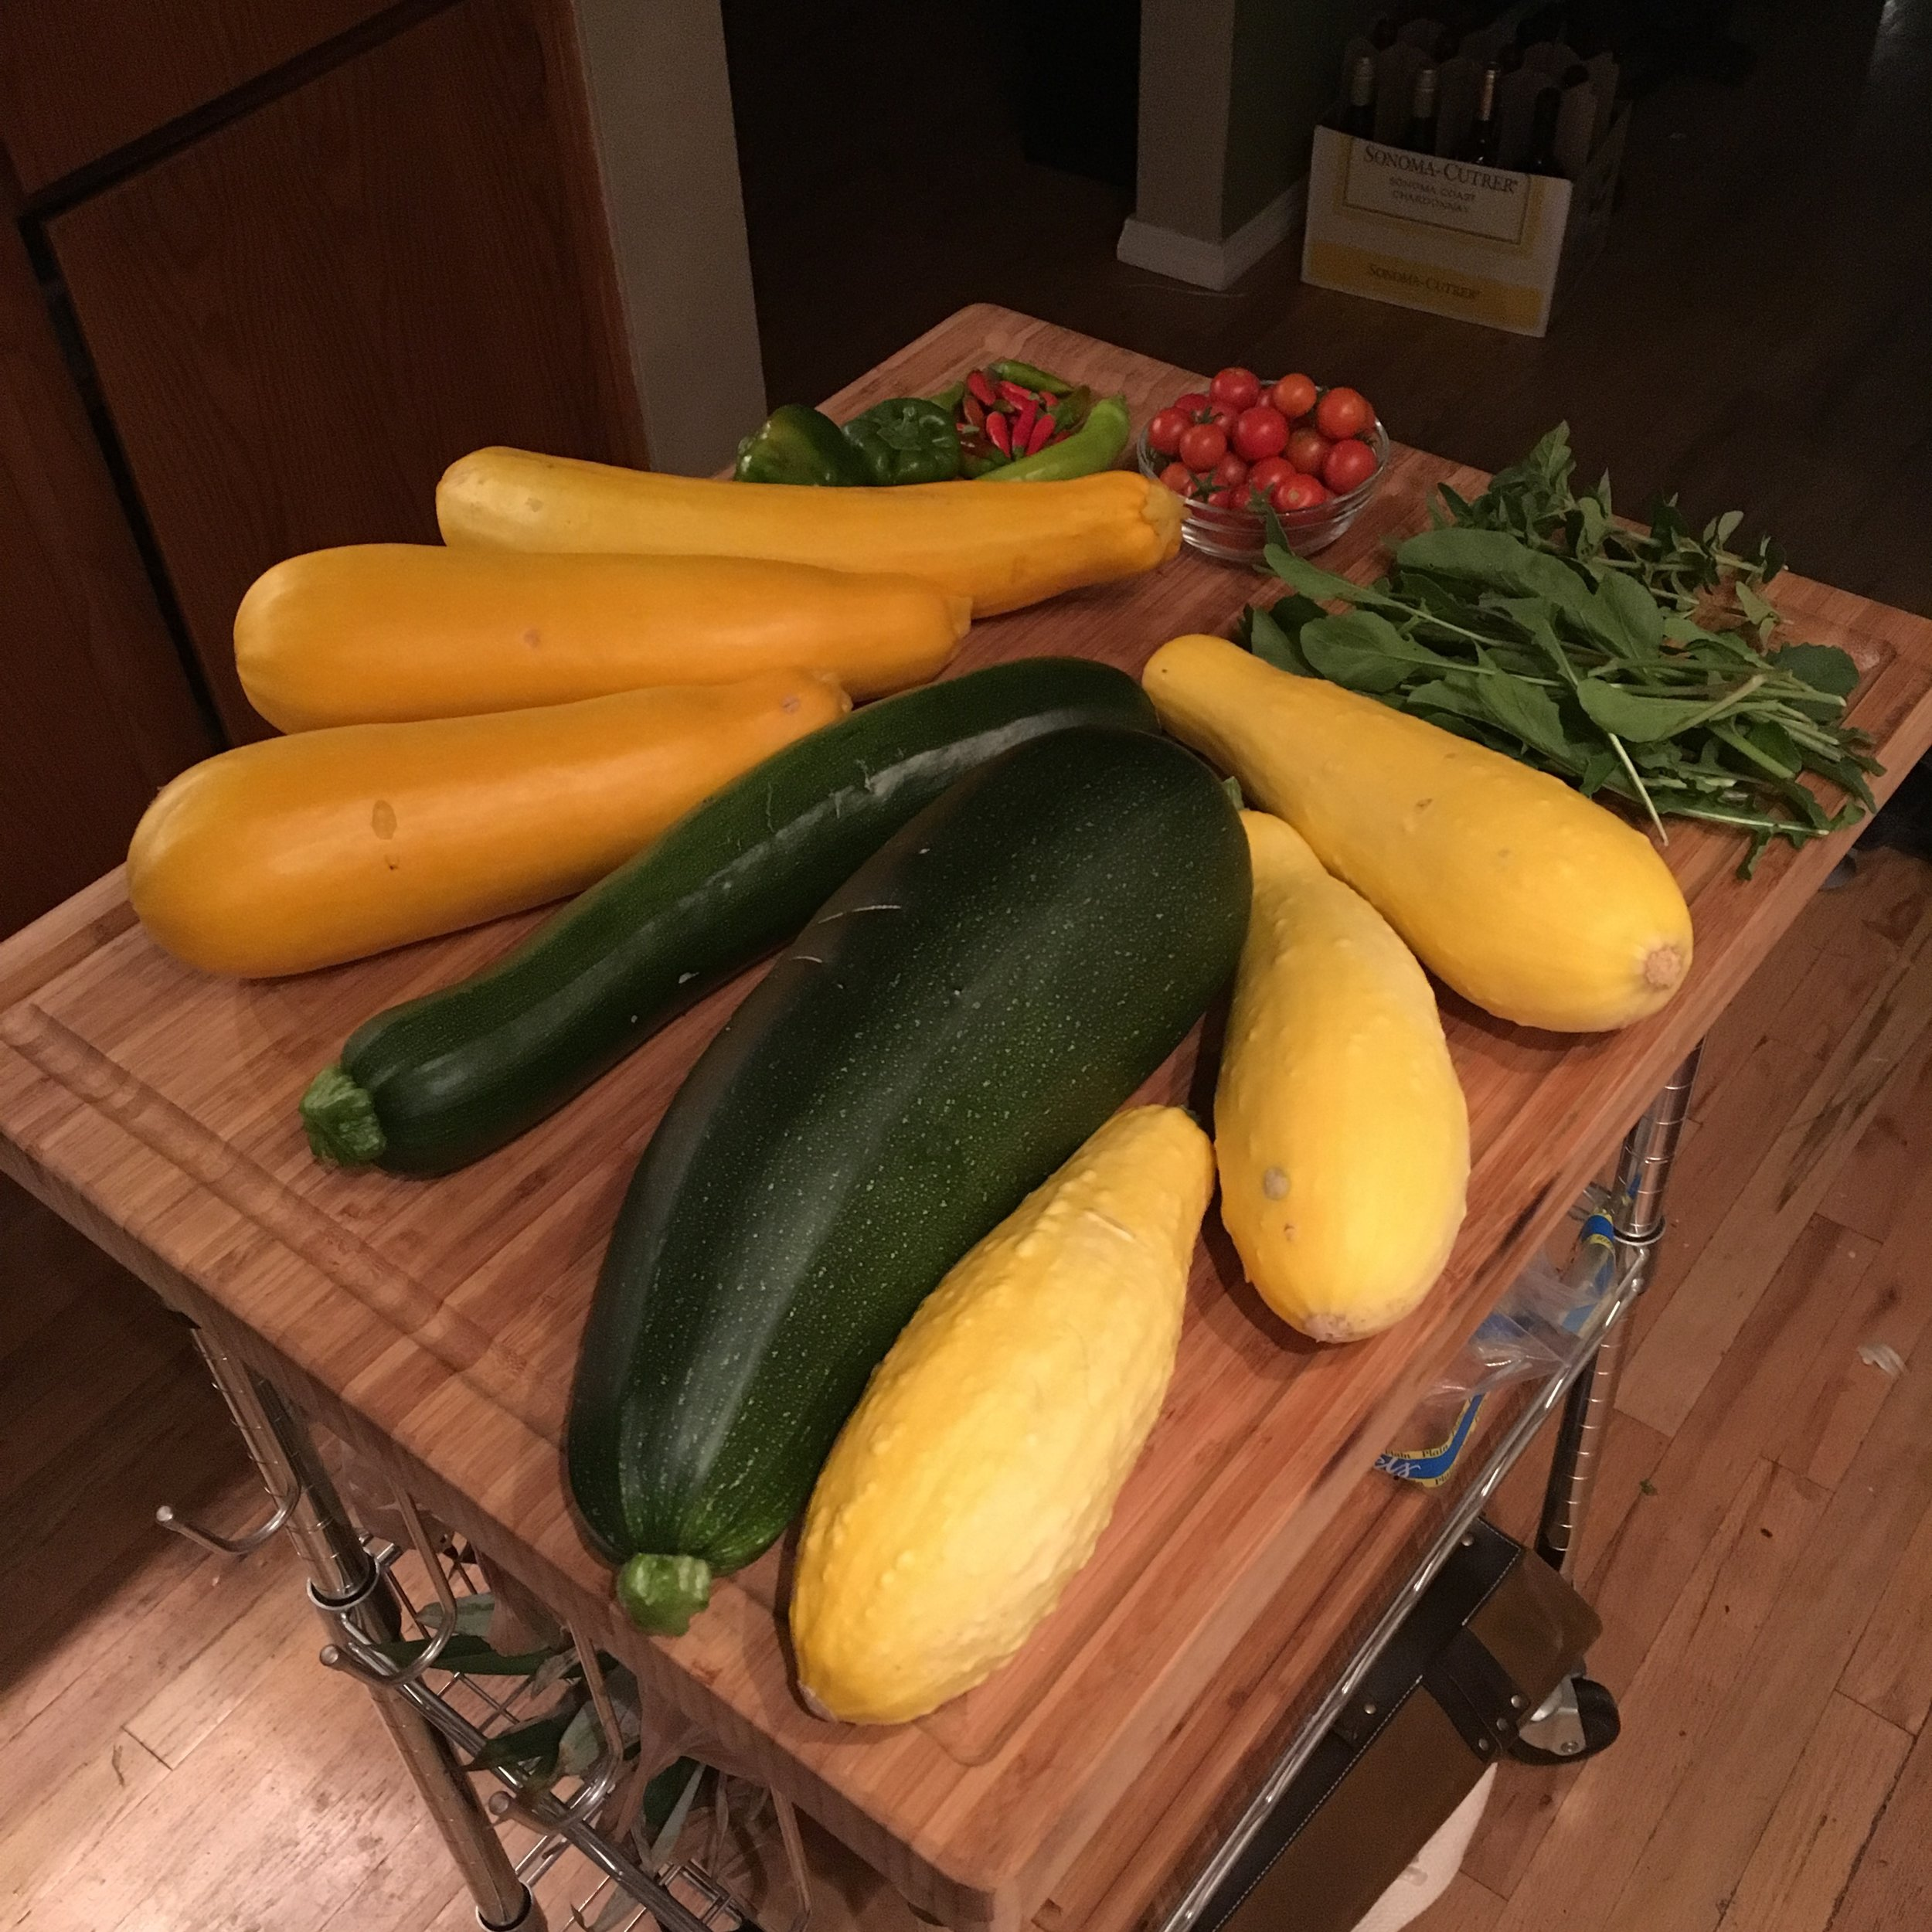 This size harvest happened on the regular, almost every week in August we had this much squash!